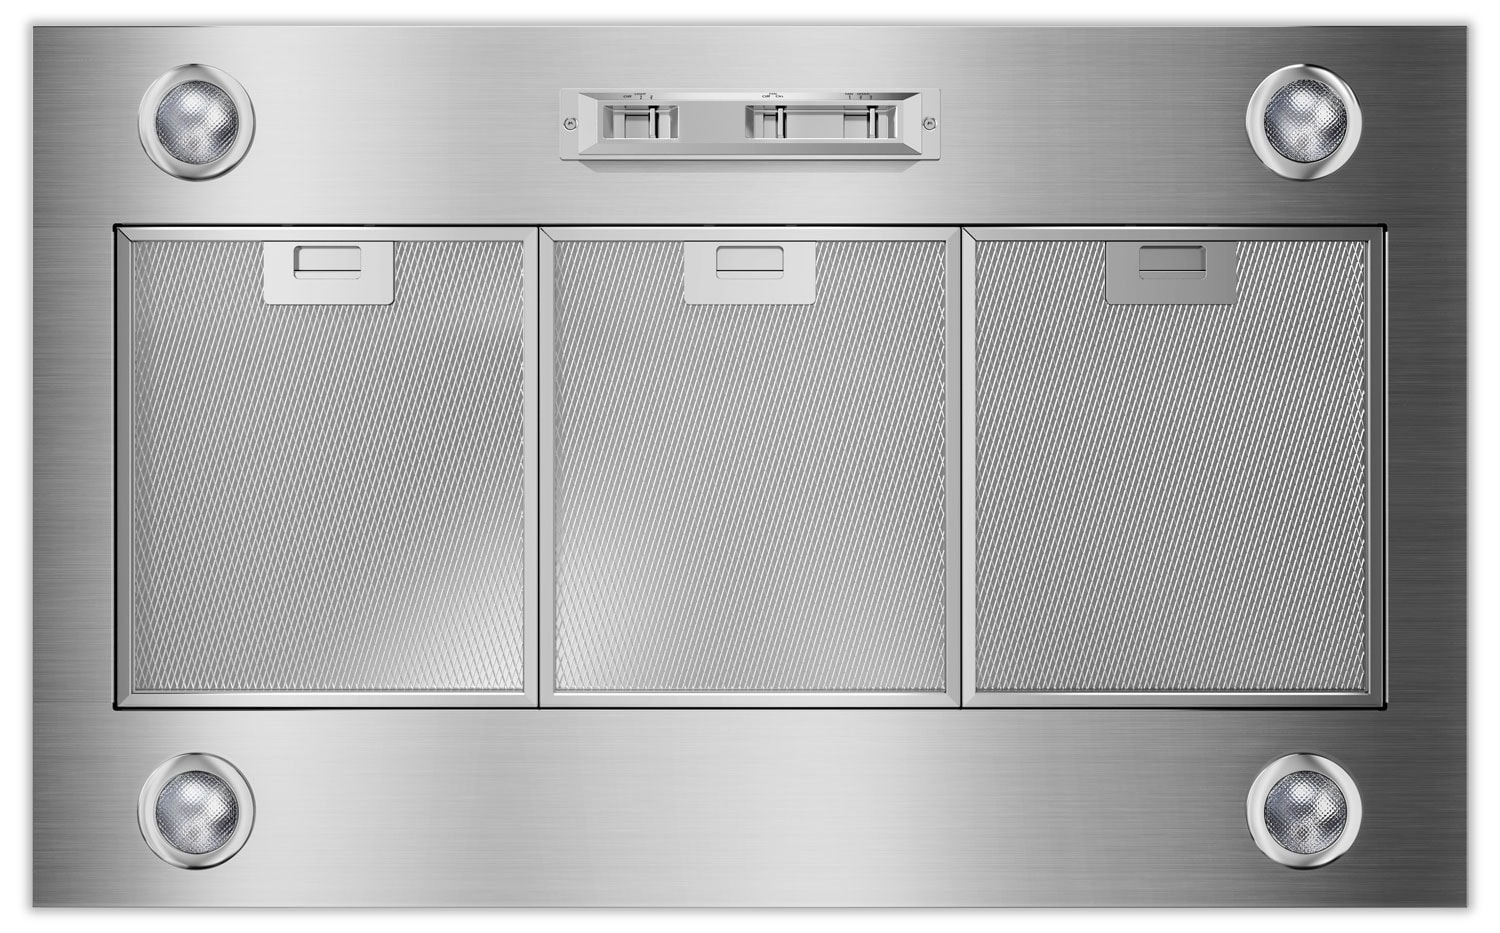 Cooking Products - KitchenAid Range Hood Liner UXL6036YSS